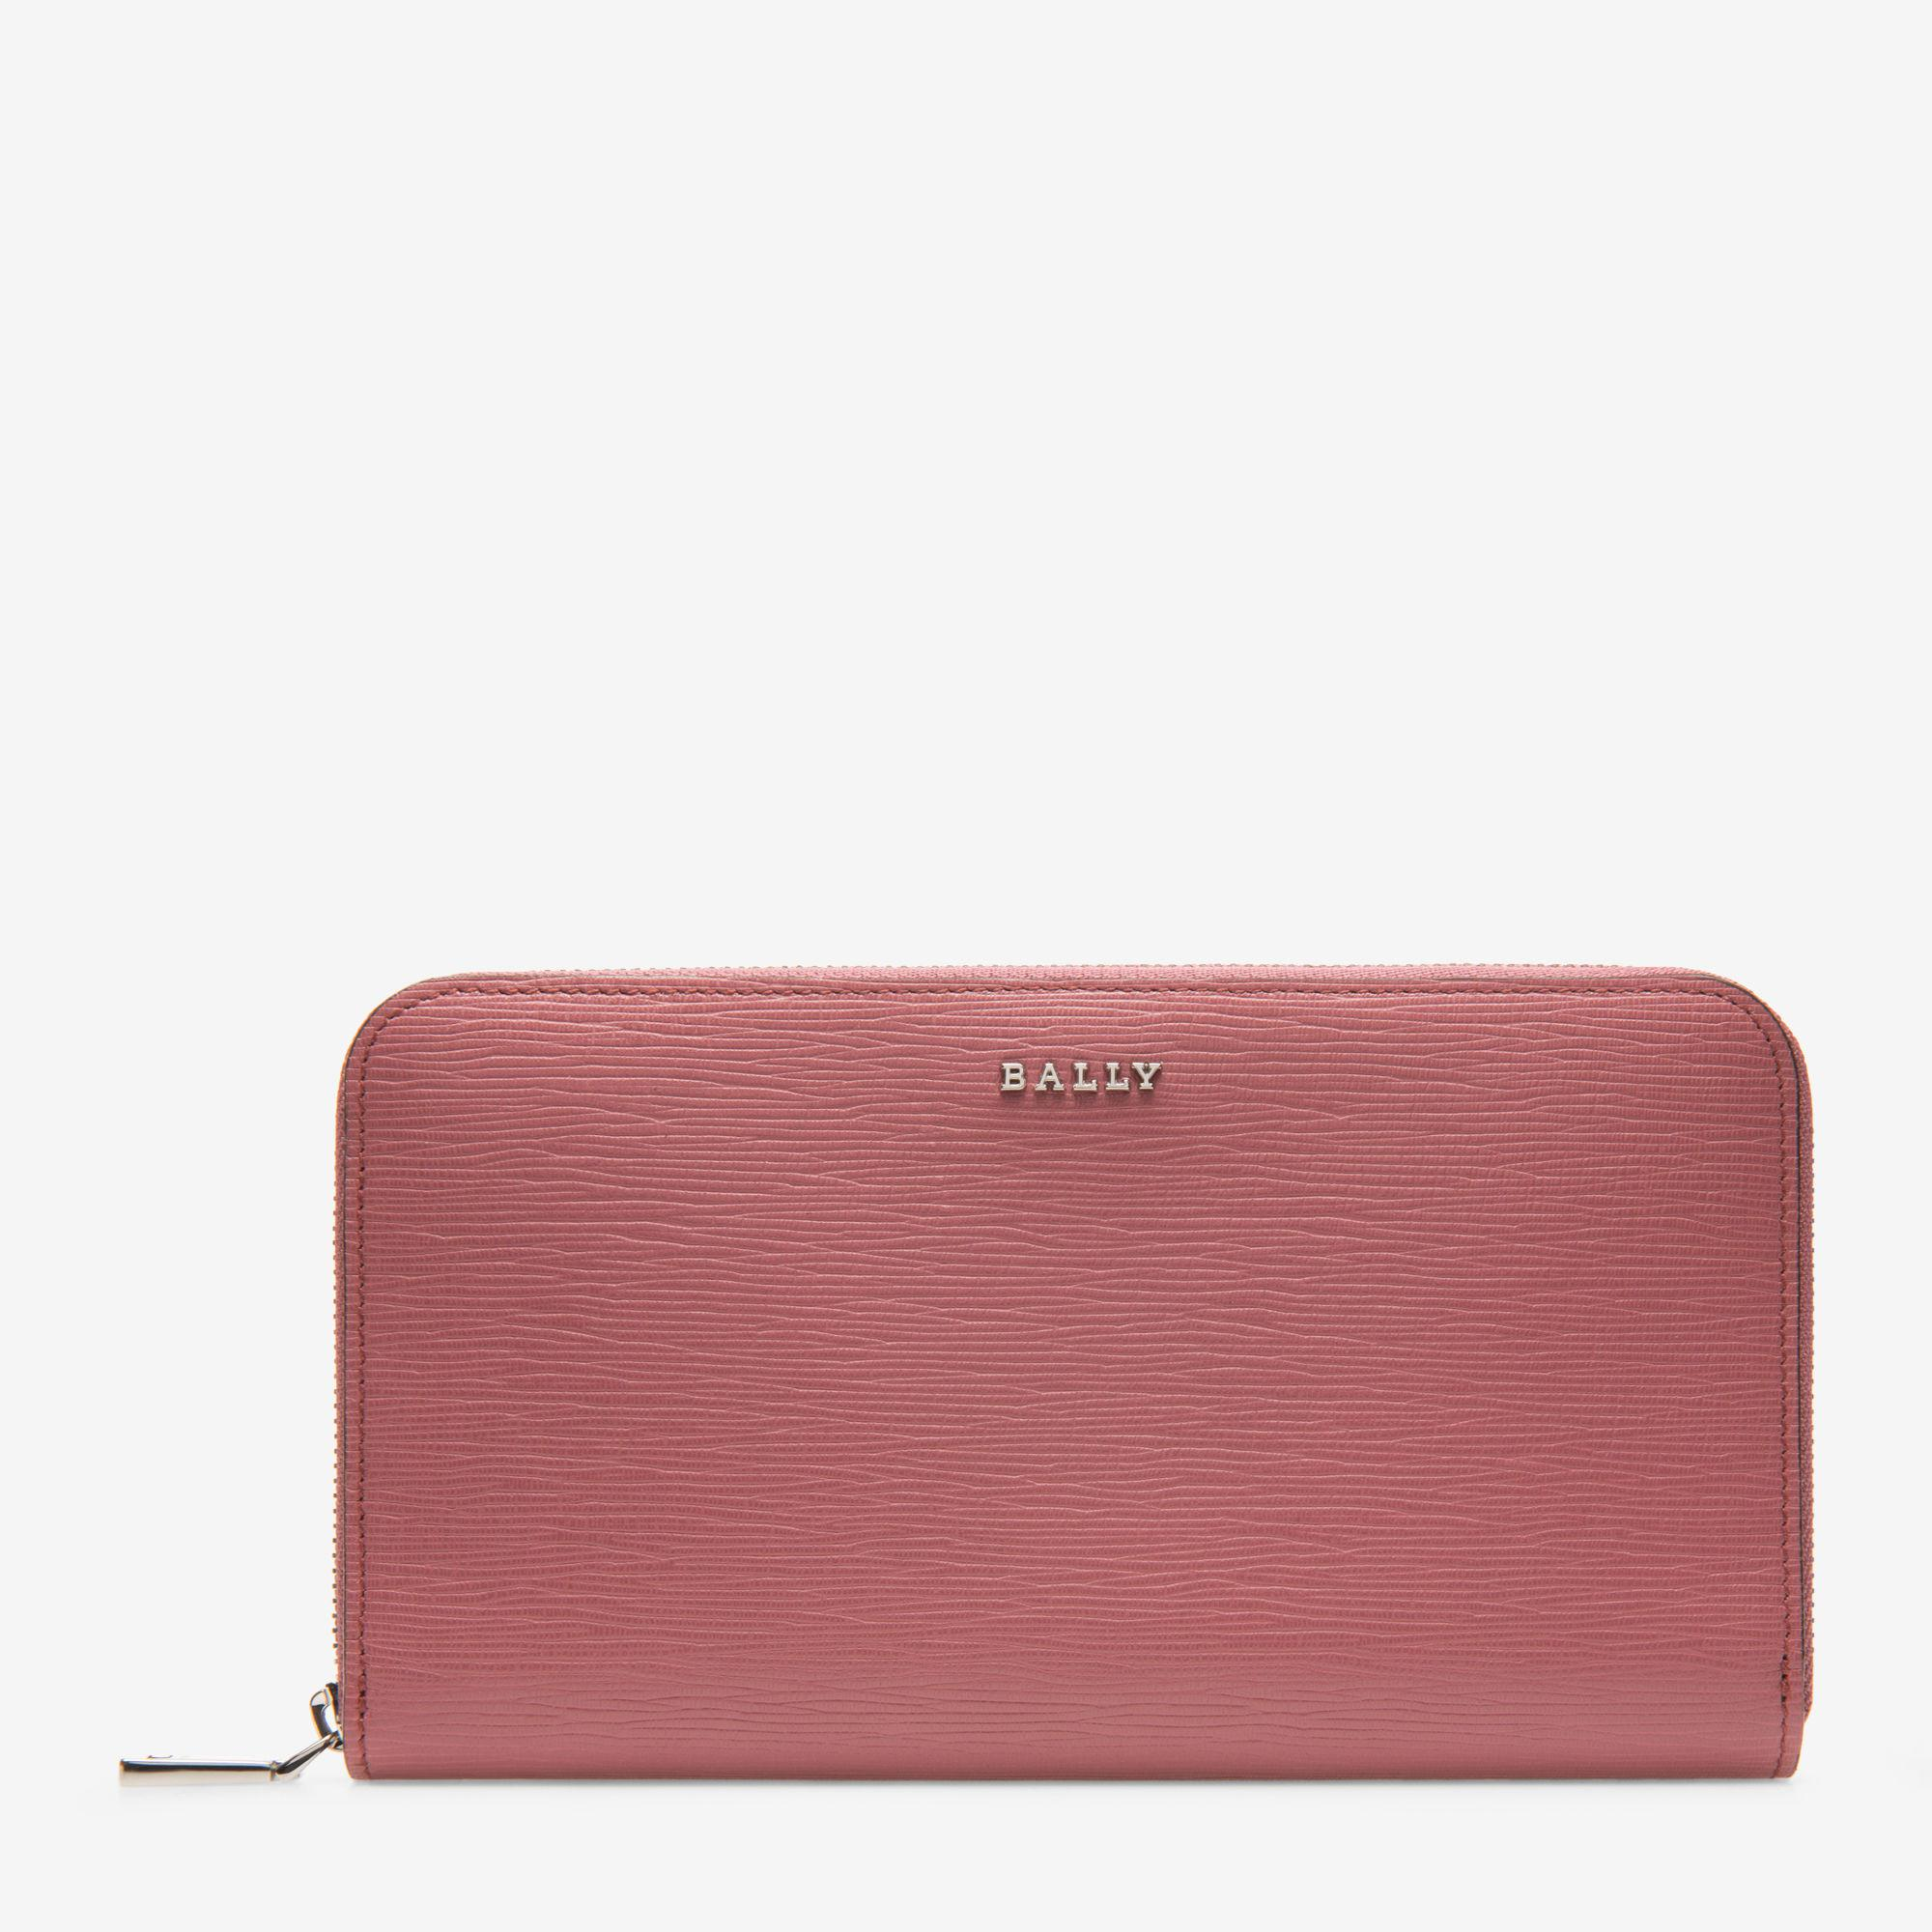 Lorel Red, Womens embossed calf leather wallet in ruby Bally